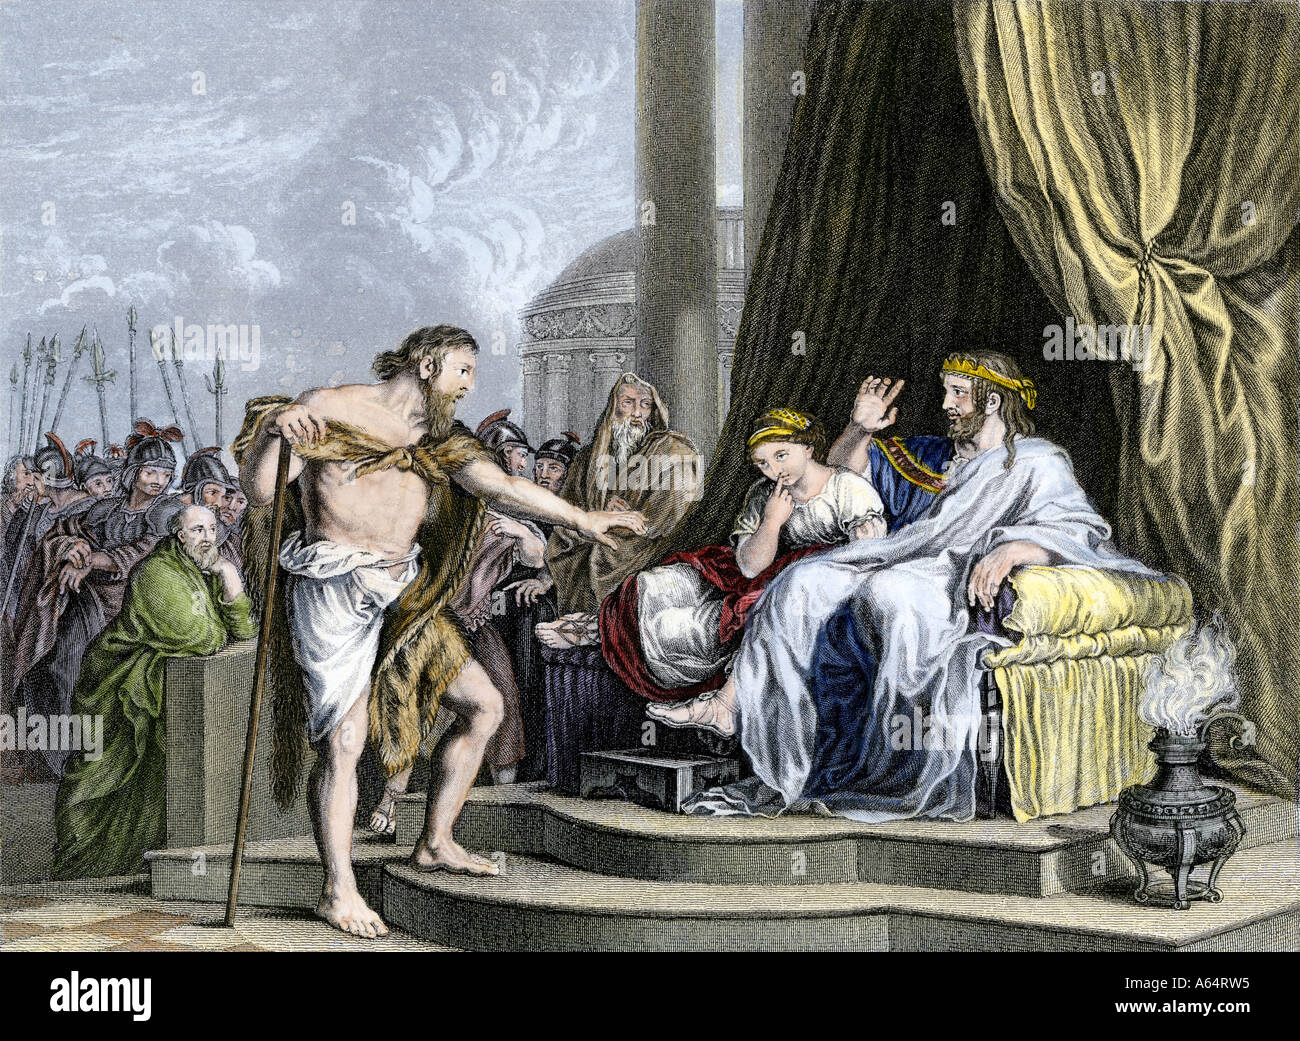 John the Baptist criticizing Herod ruler of Palestine under the Romans. Hand-colored engraving - Stock Image